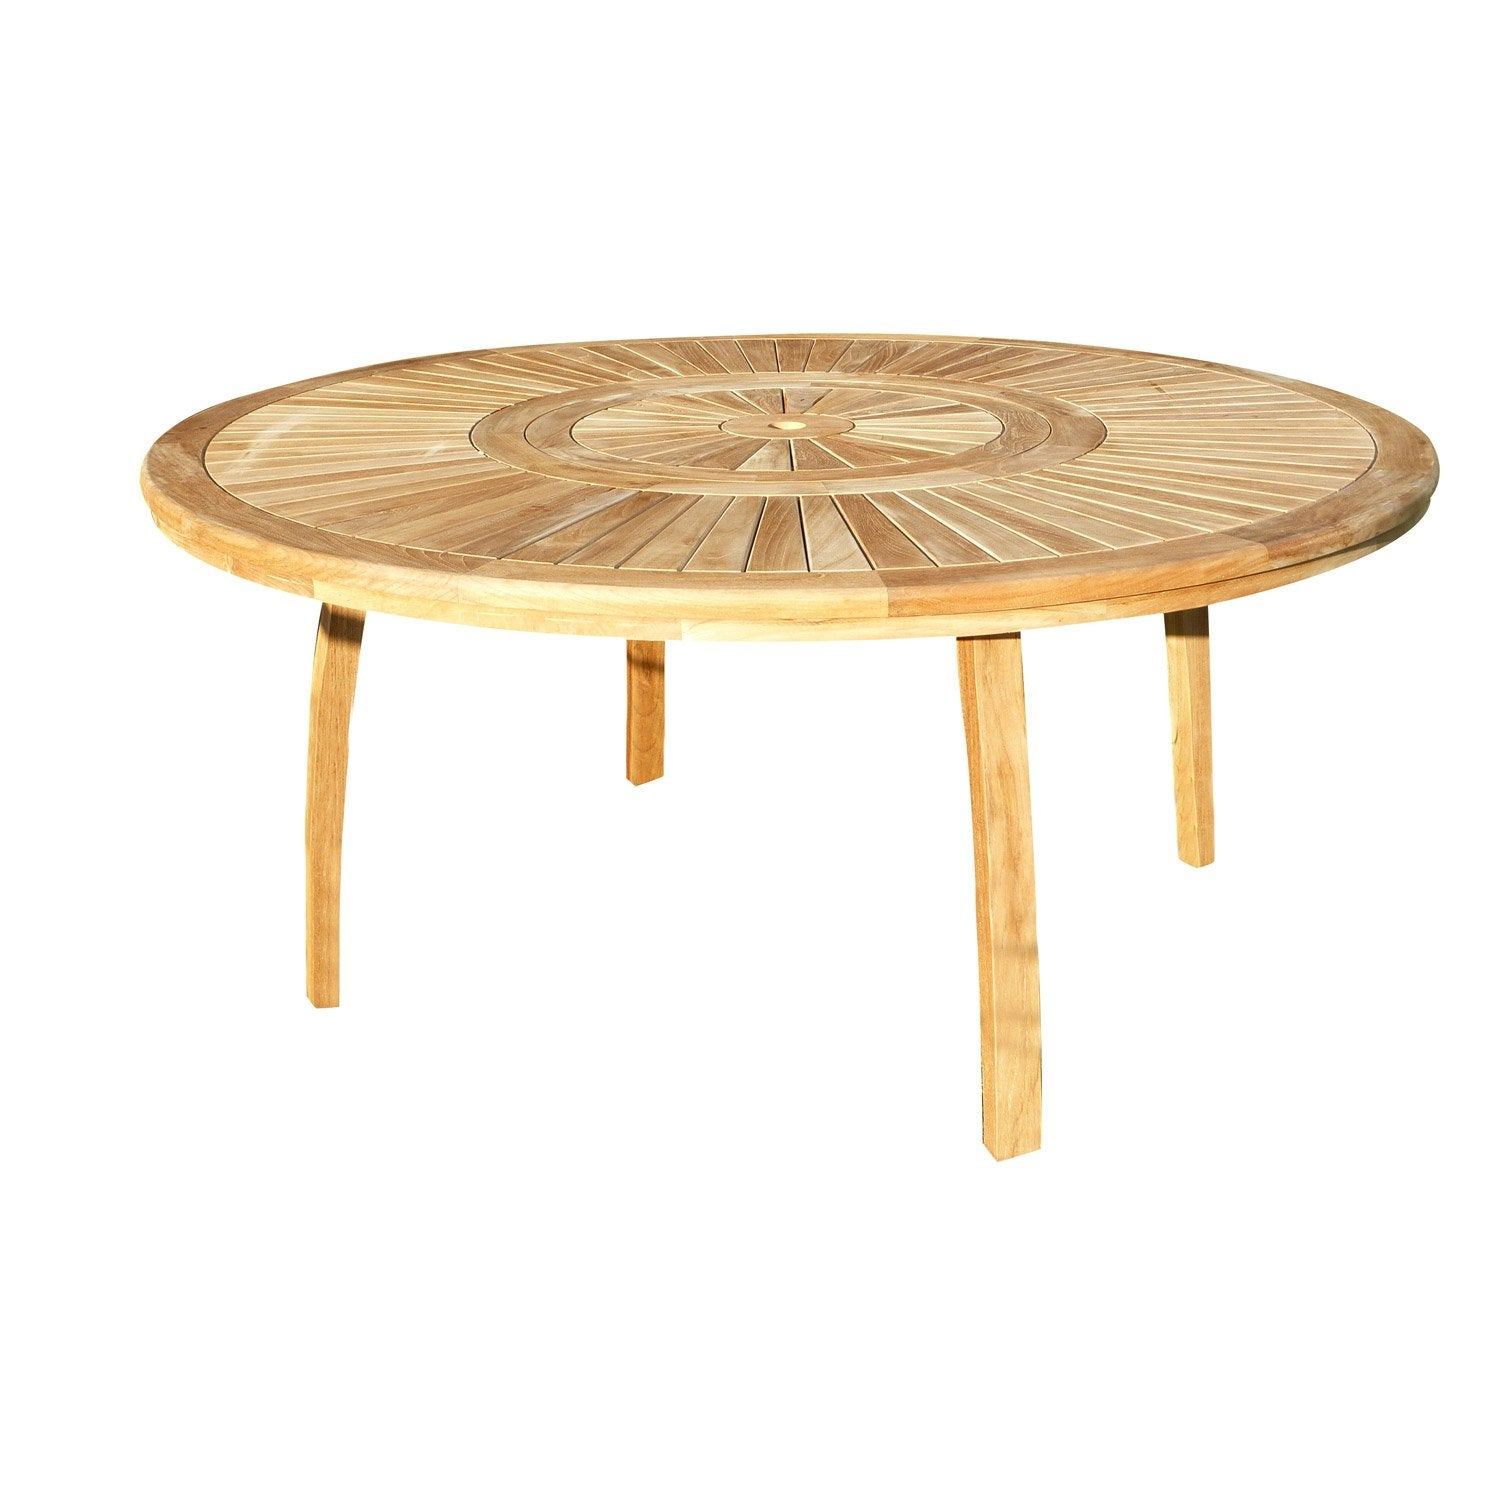 Table de jardin Orion ronde naturel 8 personnes | Leroy Merlin